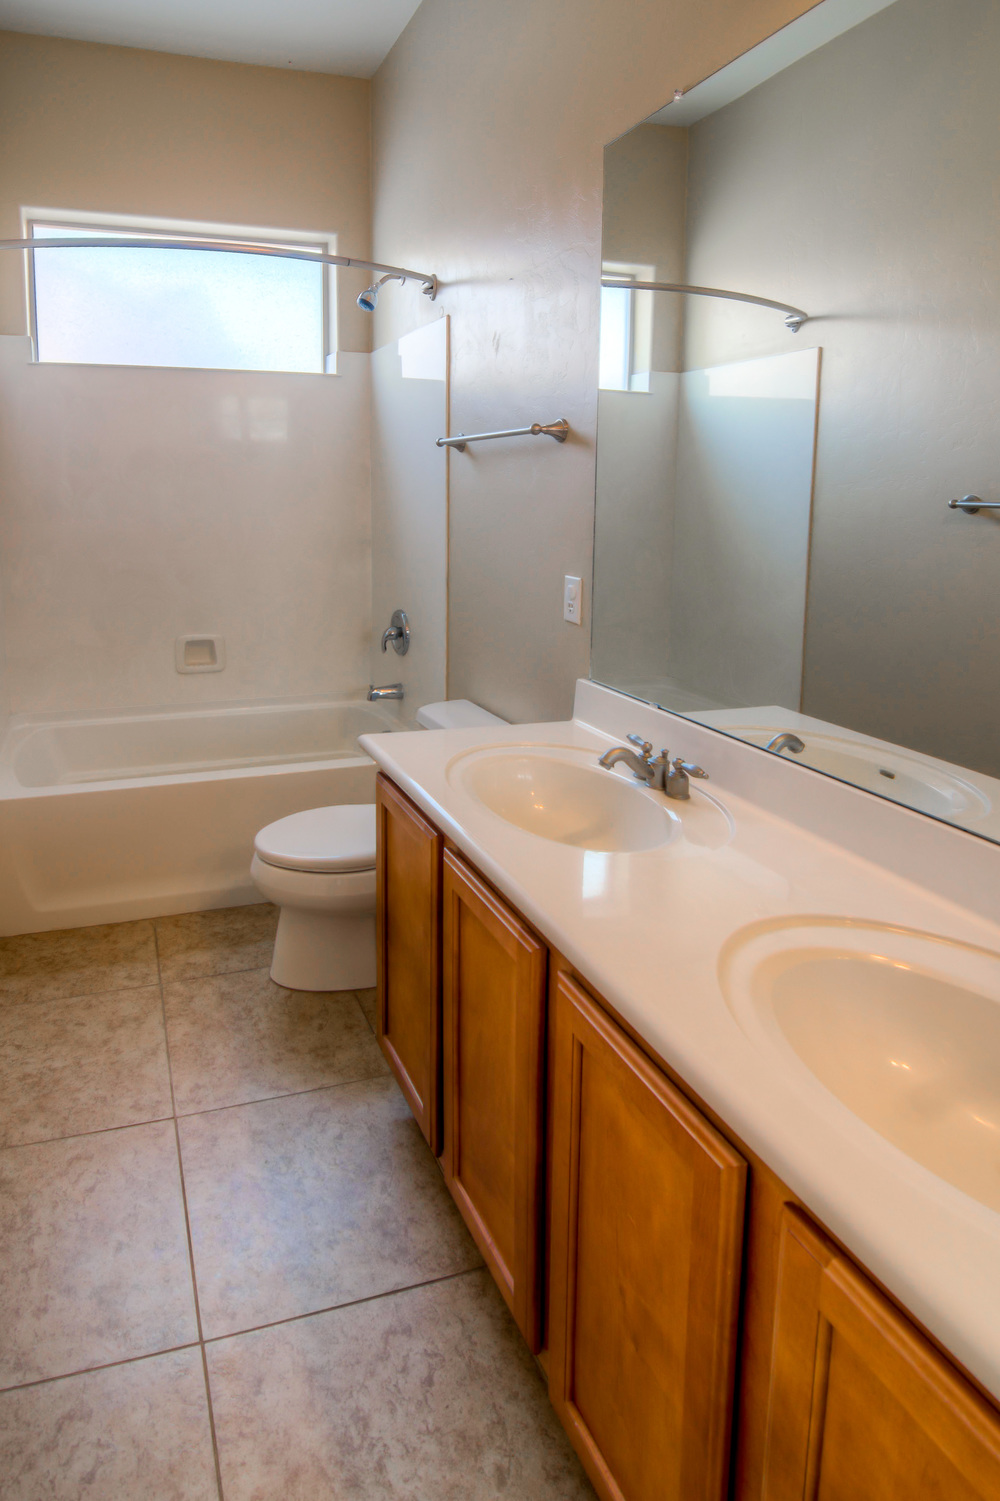 6 Bathroom 1 photo a.jpg